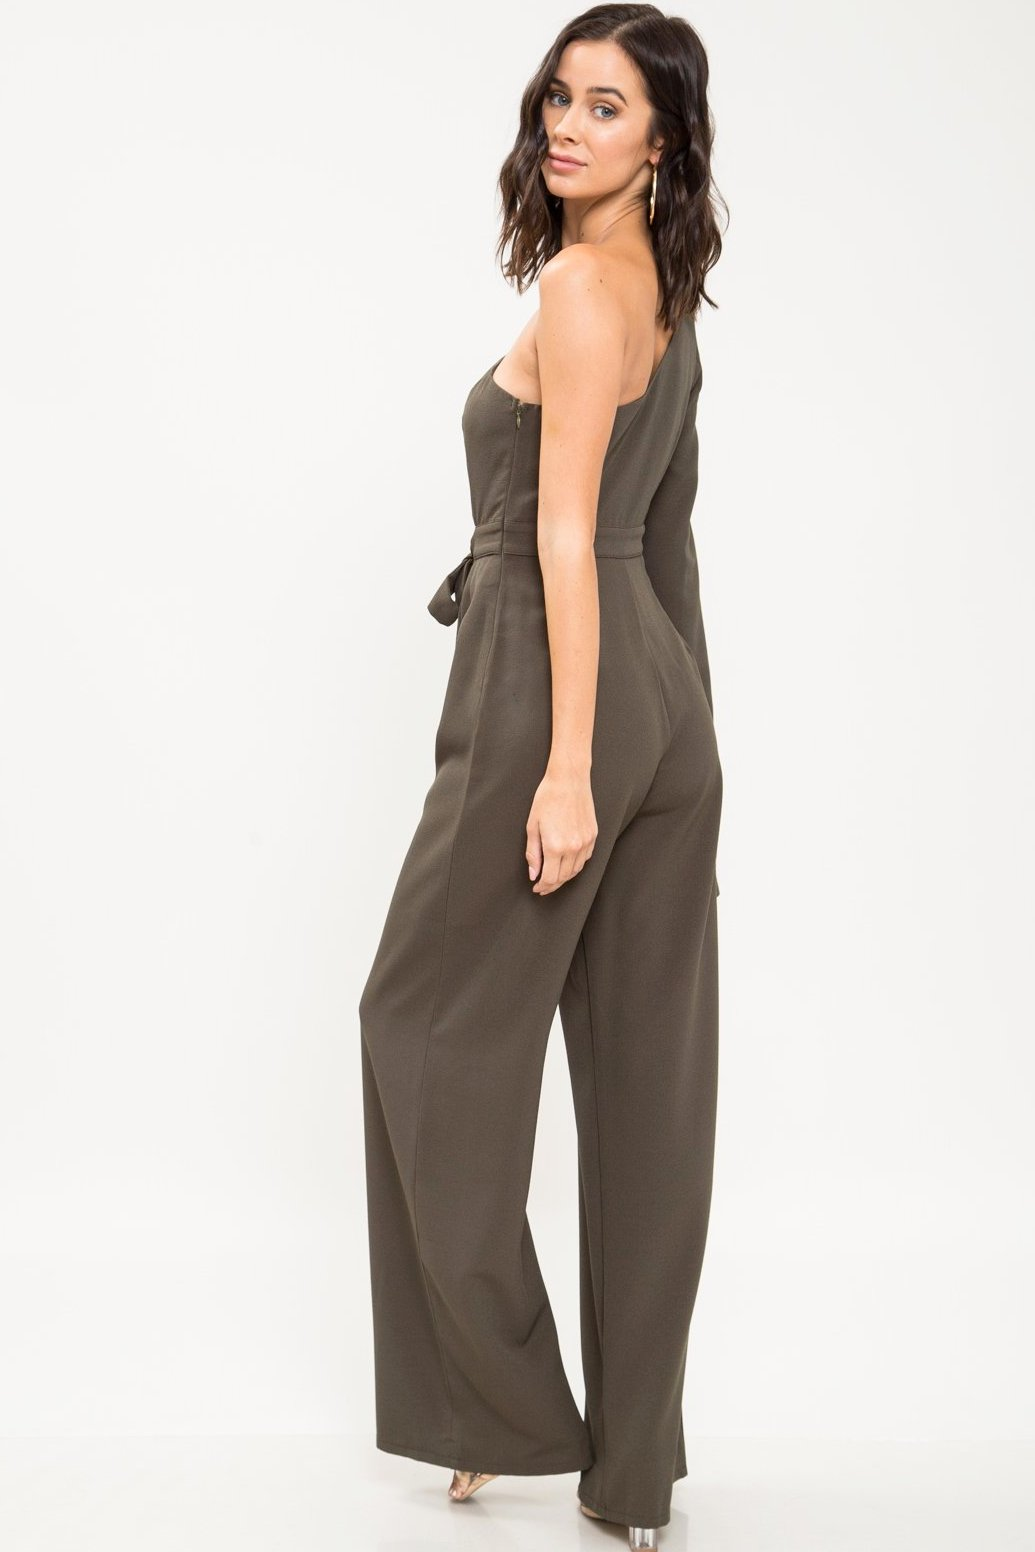 Trisha Cutout One Shoulder Jumpsuit - Geegeebae